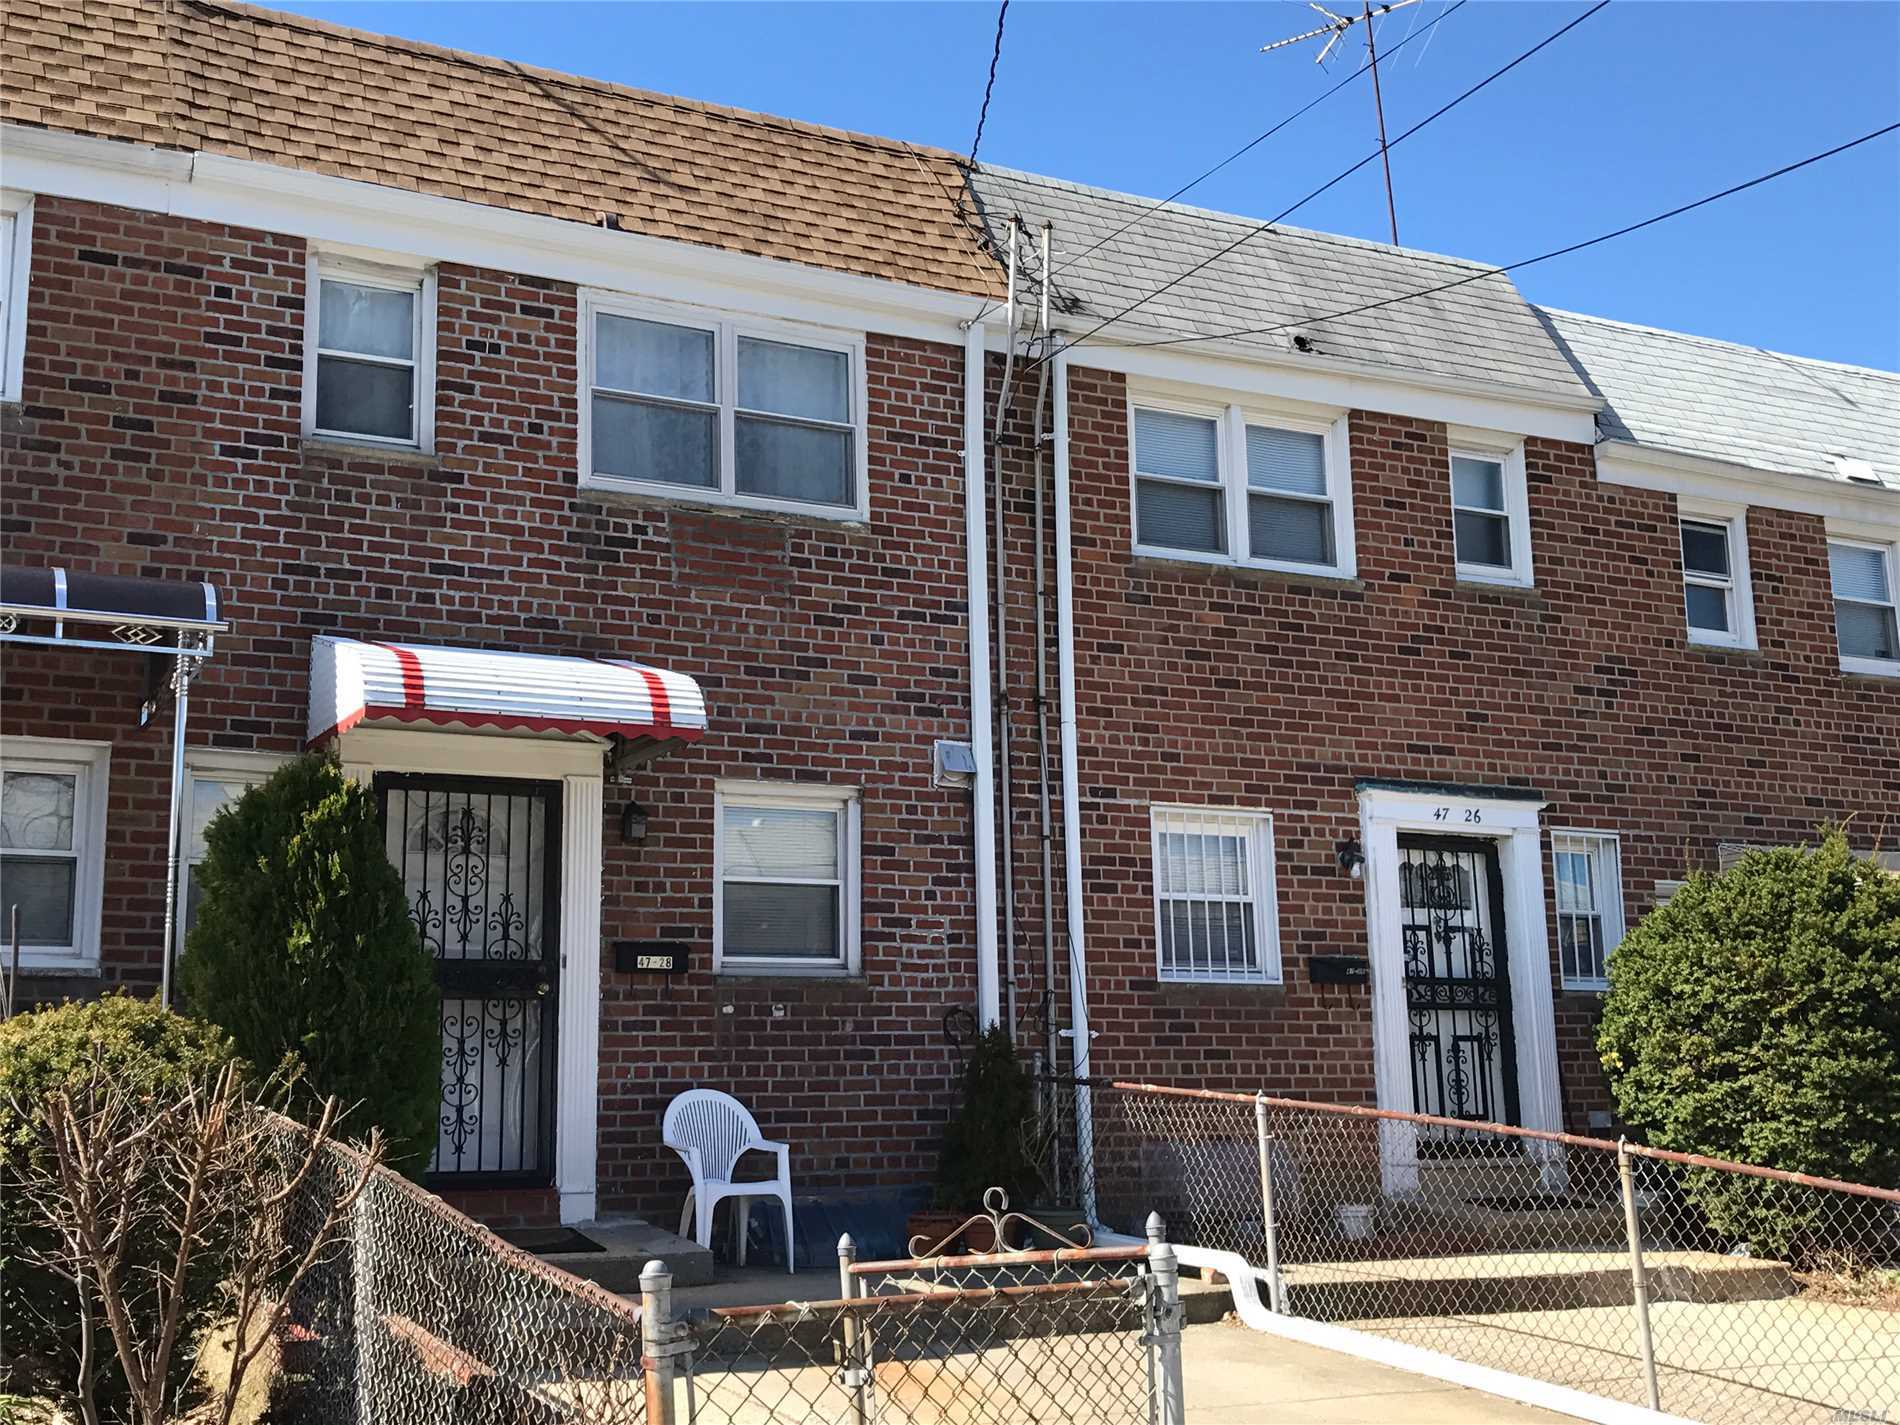 Heart Of Bayside. Best School District Of No.26,  Half Block To Schools & Q27 Bus On 48 Ave. Near Park, Lake, Q12 On Northern Blvd. Lirr. Within 10 Minutes To Nyc. 8 Minutes Driving To Bay T. Mall On 26 Ave & Bell Blvd. The House Is Very Well Maintained & In Excellent Condition. Seeing Is Believing.